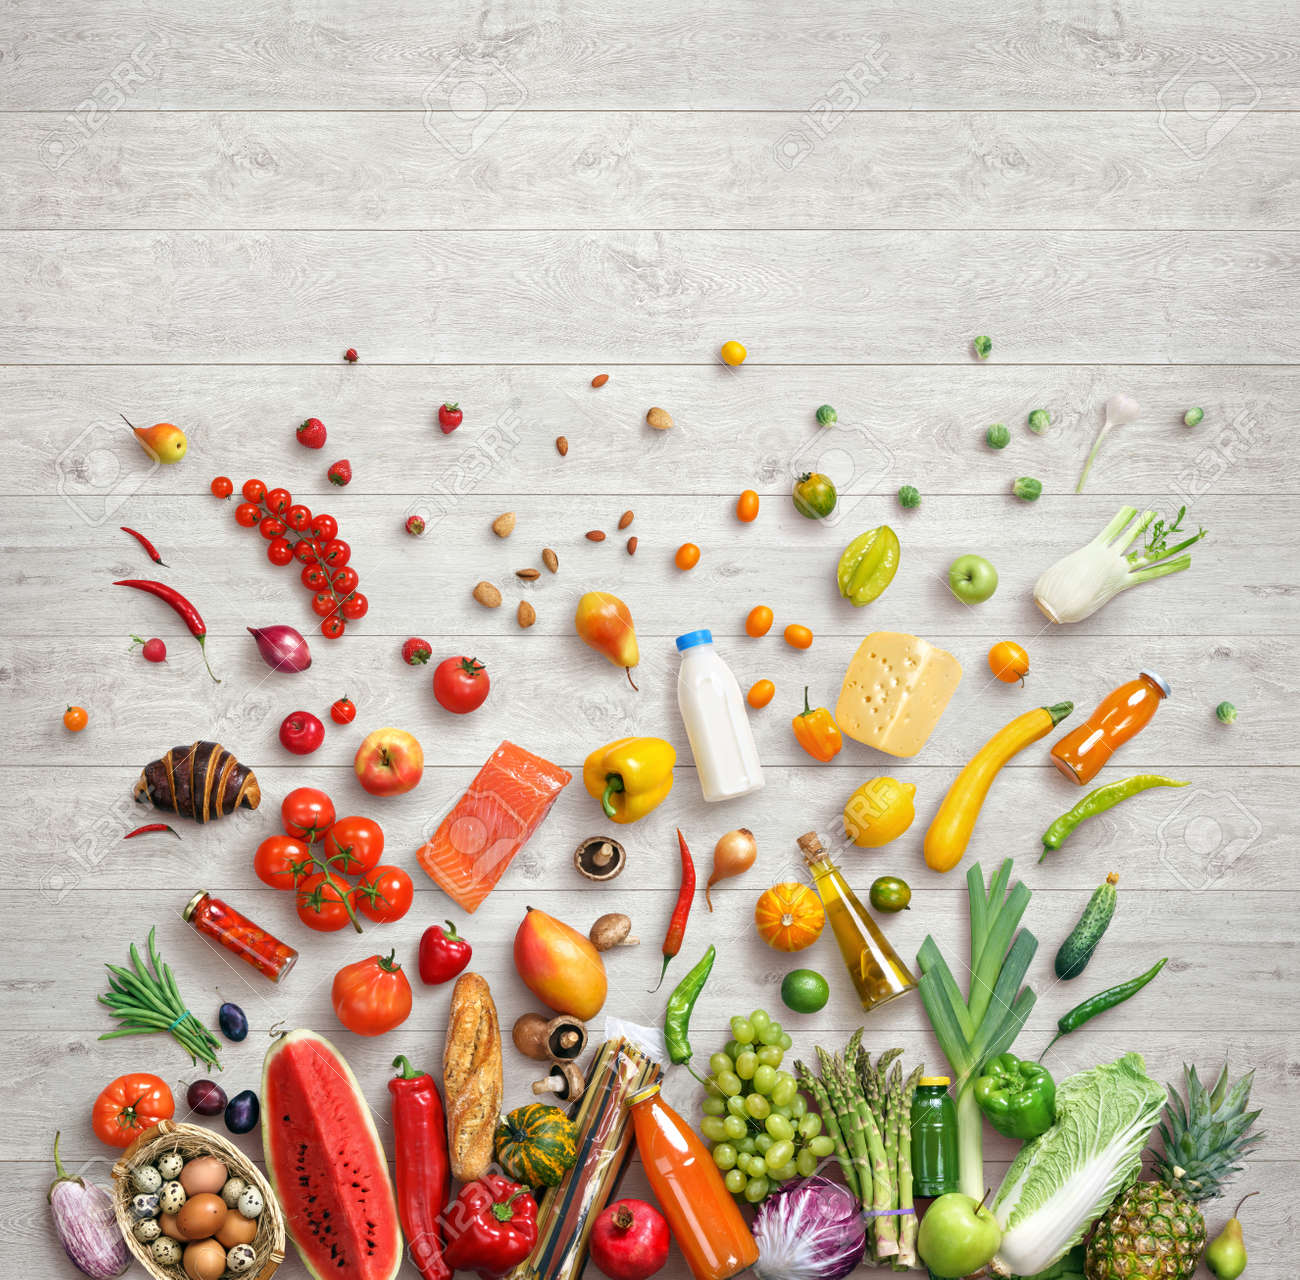 Healthy Food Background Studio Photography Of Different Fruits Stock Photo Picture And Royalty Free Image Image 54494047